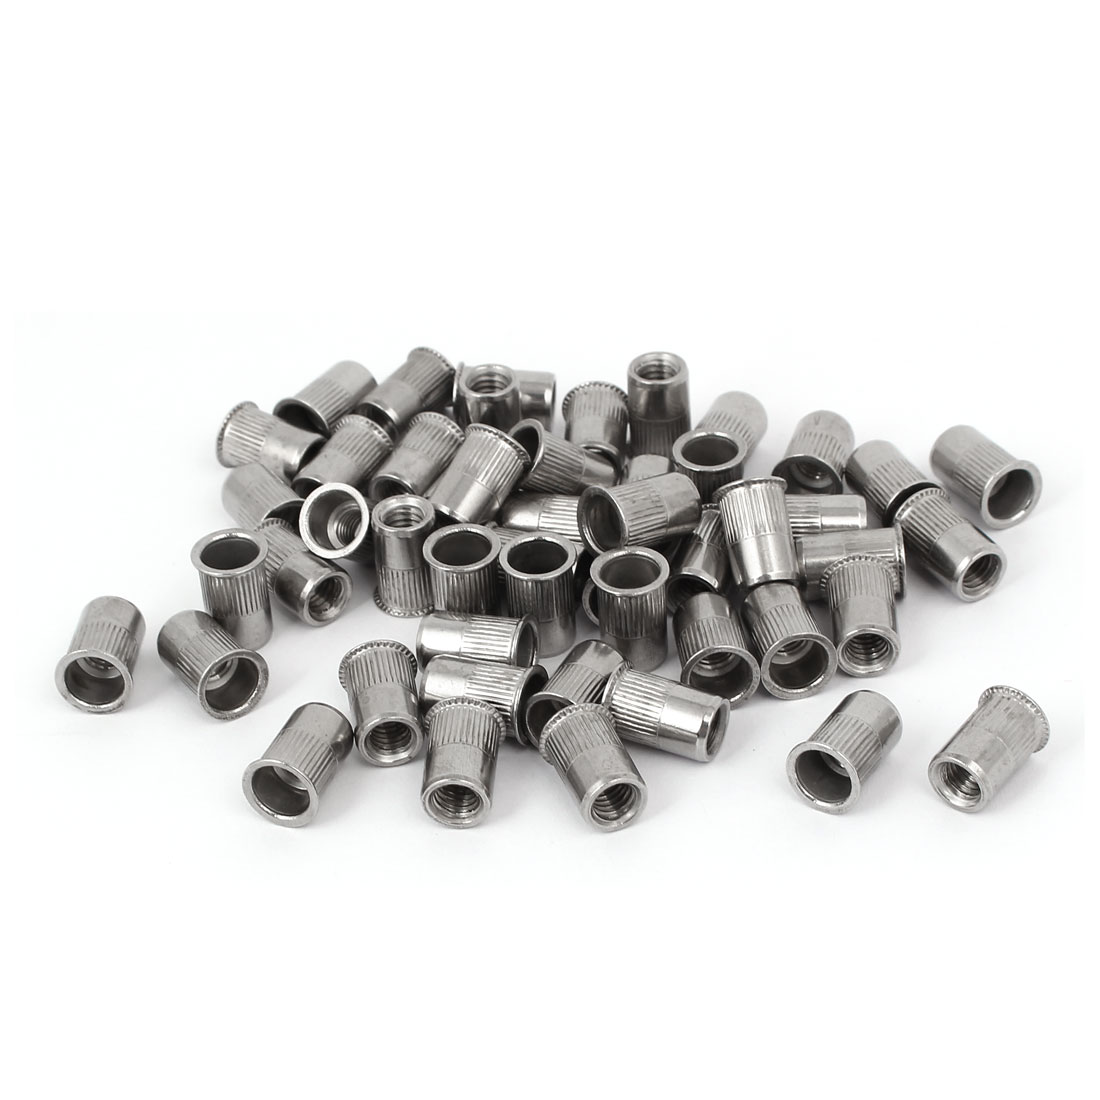 M6 x 14mm 304 Stainless Steel Countersunk Head Rivet Nut Insert Nutsert 50PCS